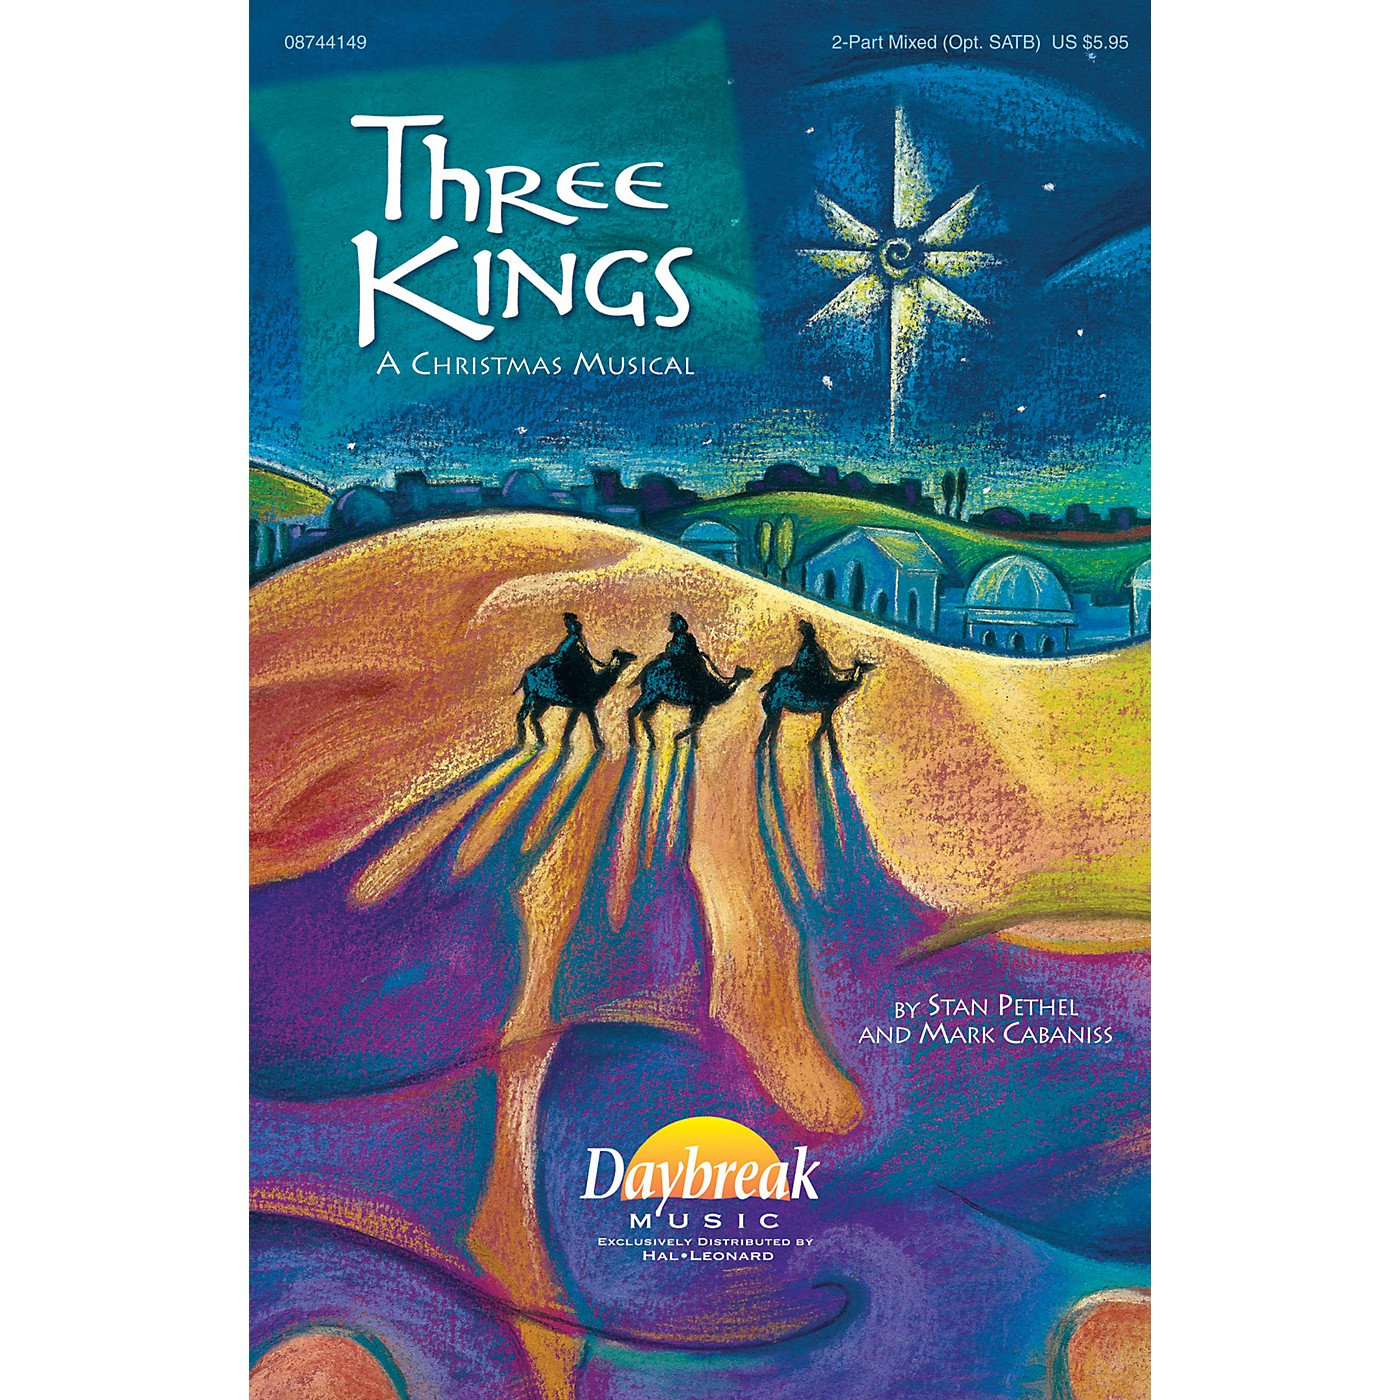 Daybreak Music Three Kings 2 Part Mixed composed by Mark Cabaniss thumbnail